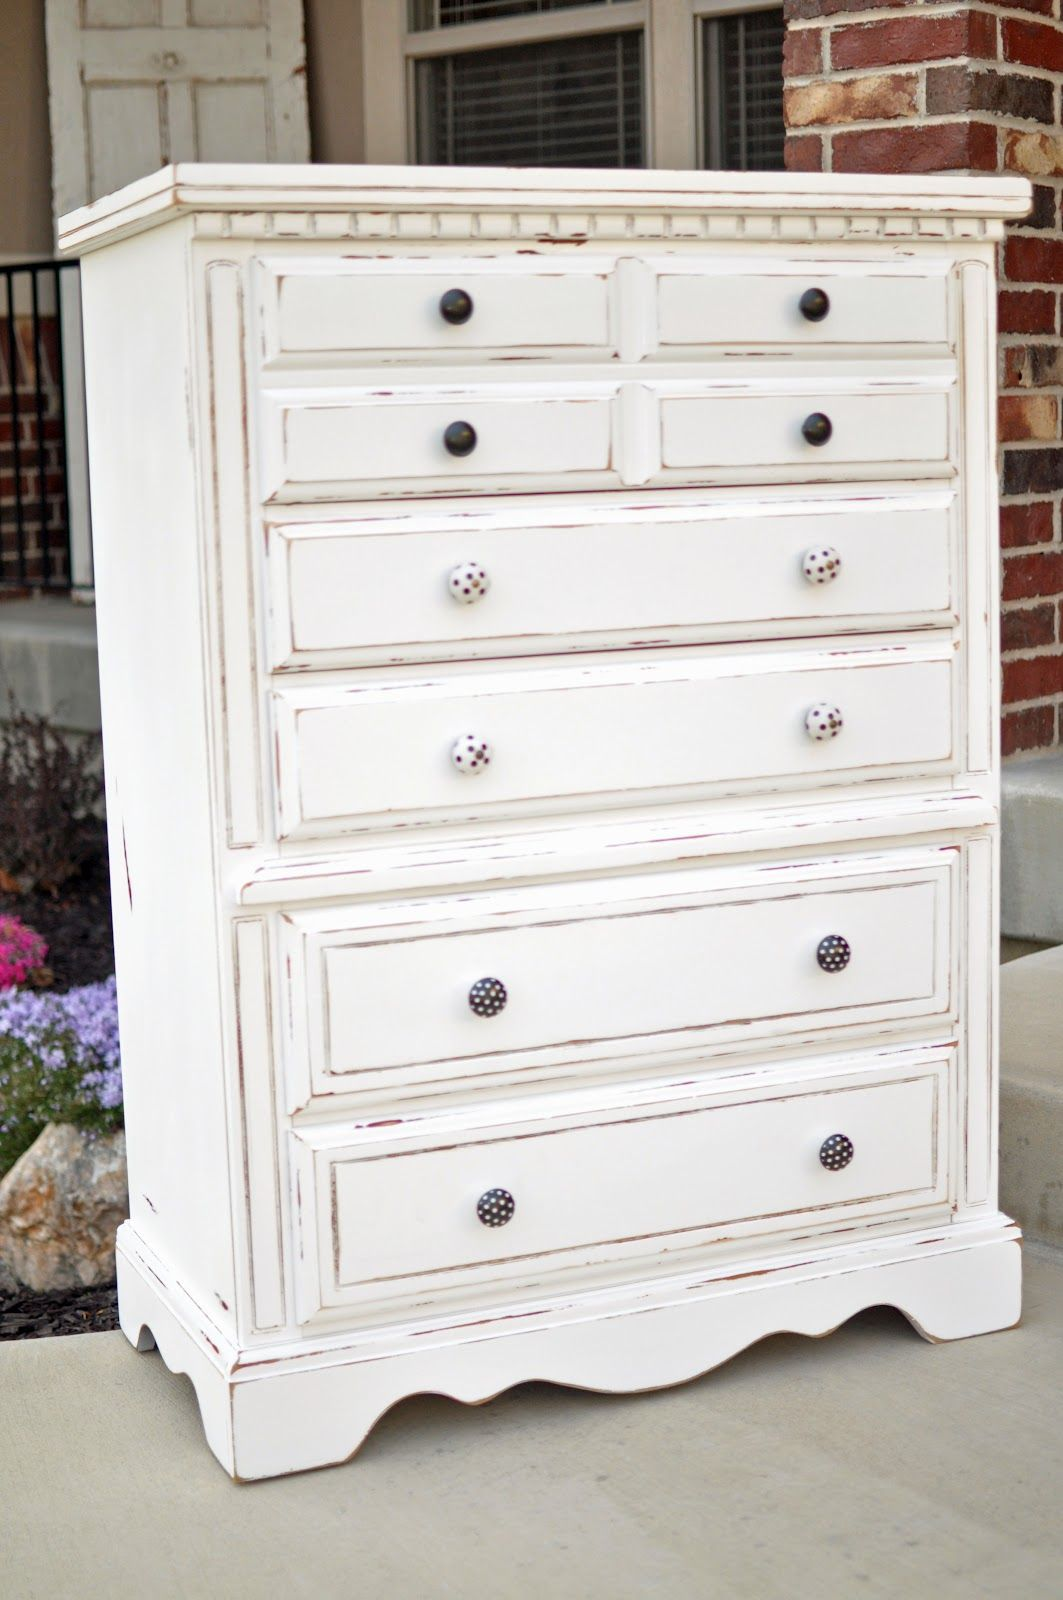 White refinished distressed dresser. CleverlyCrafty